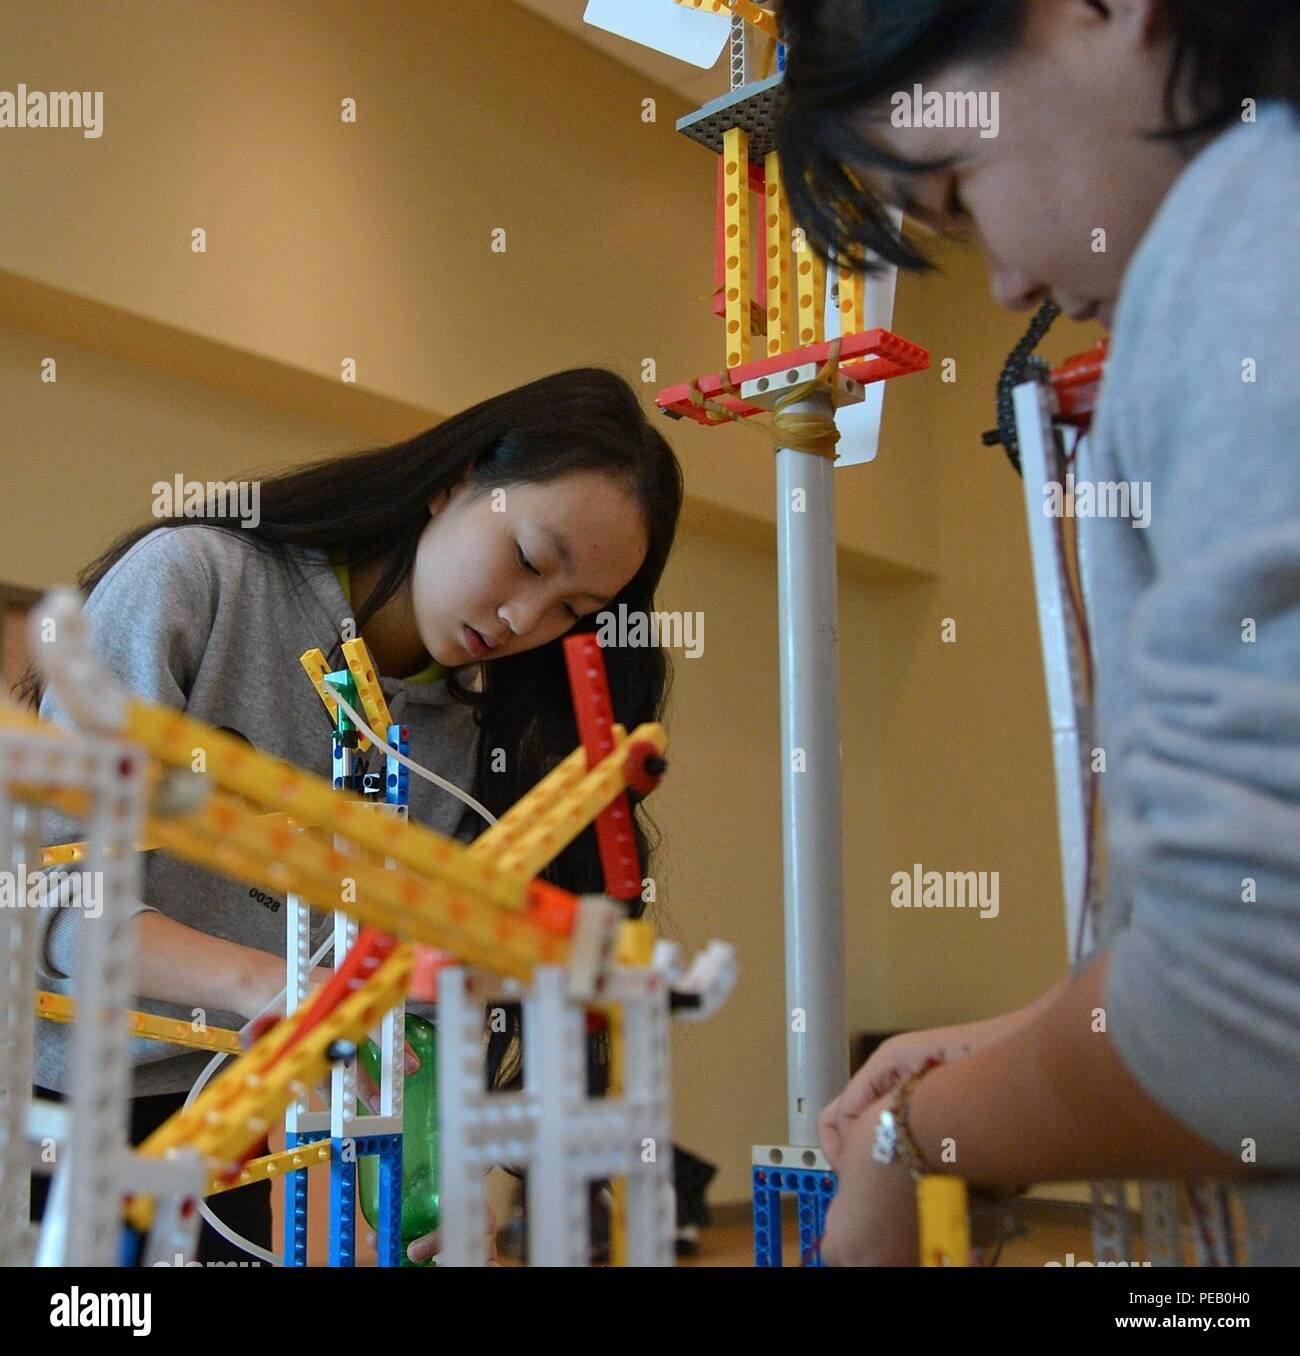 Rube Goldberg Machine Stock Photos & Rube Goldberg Machine